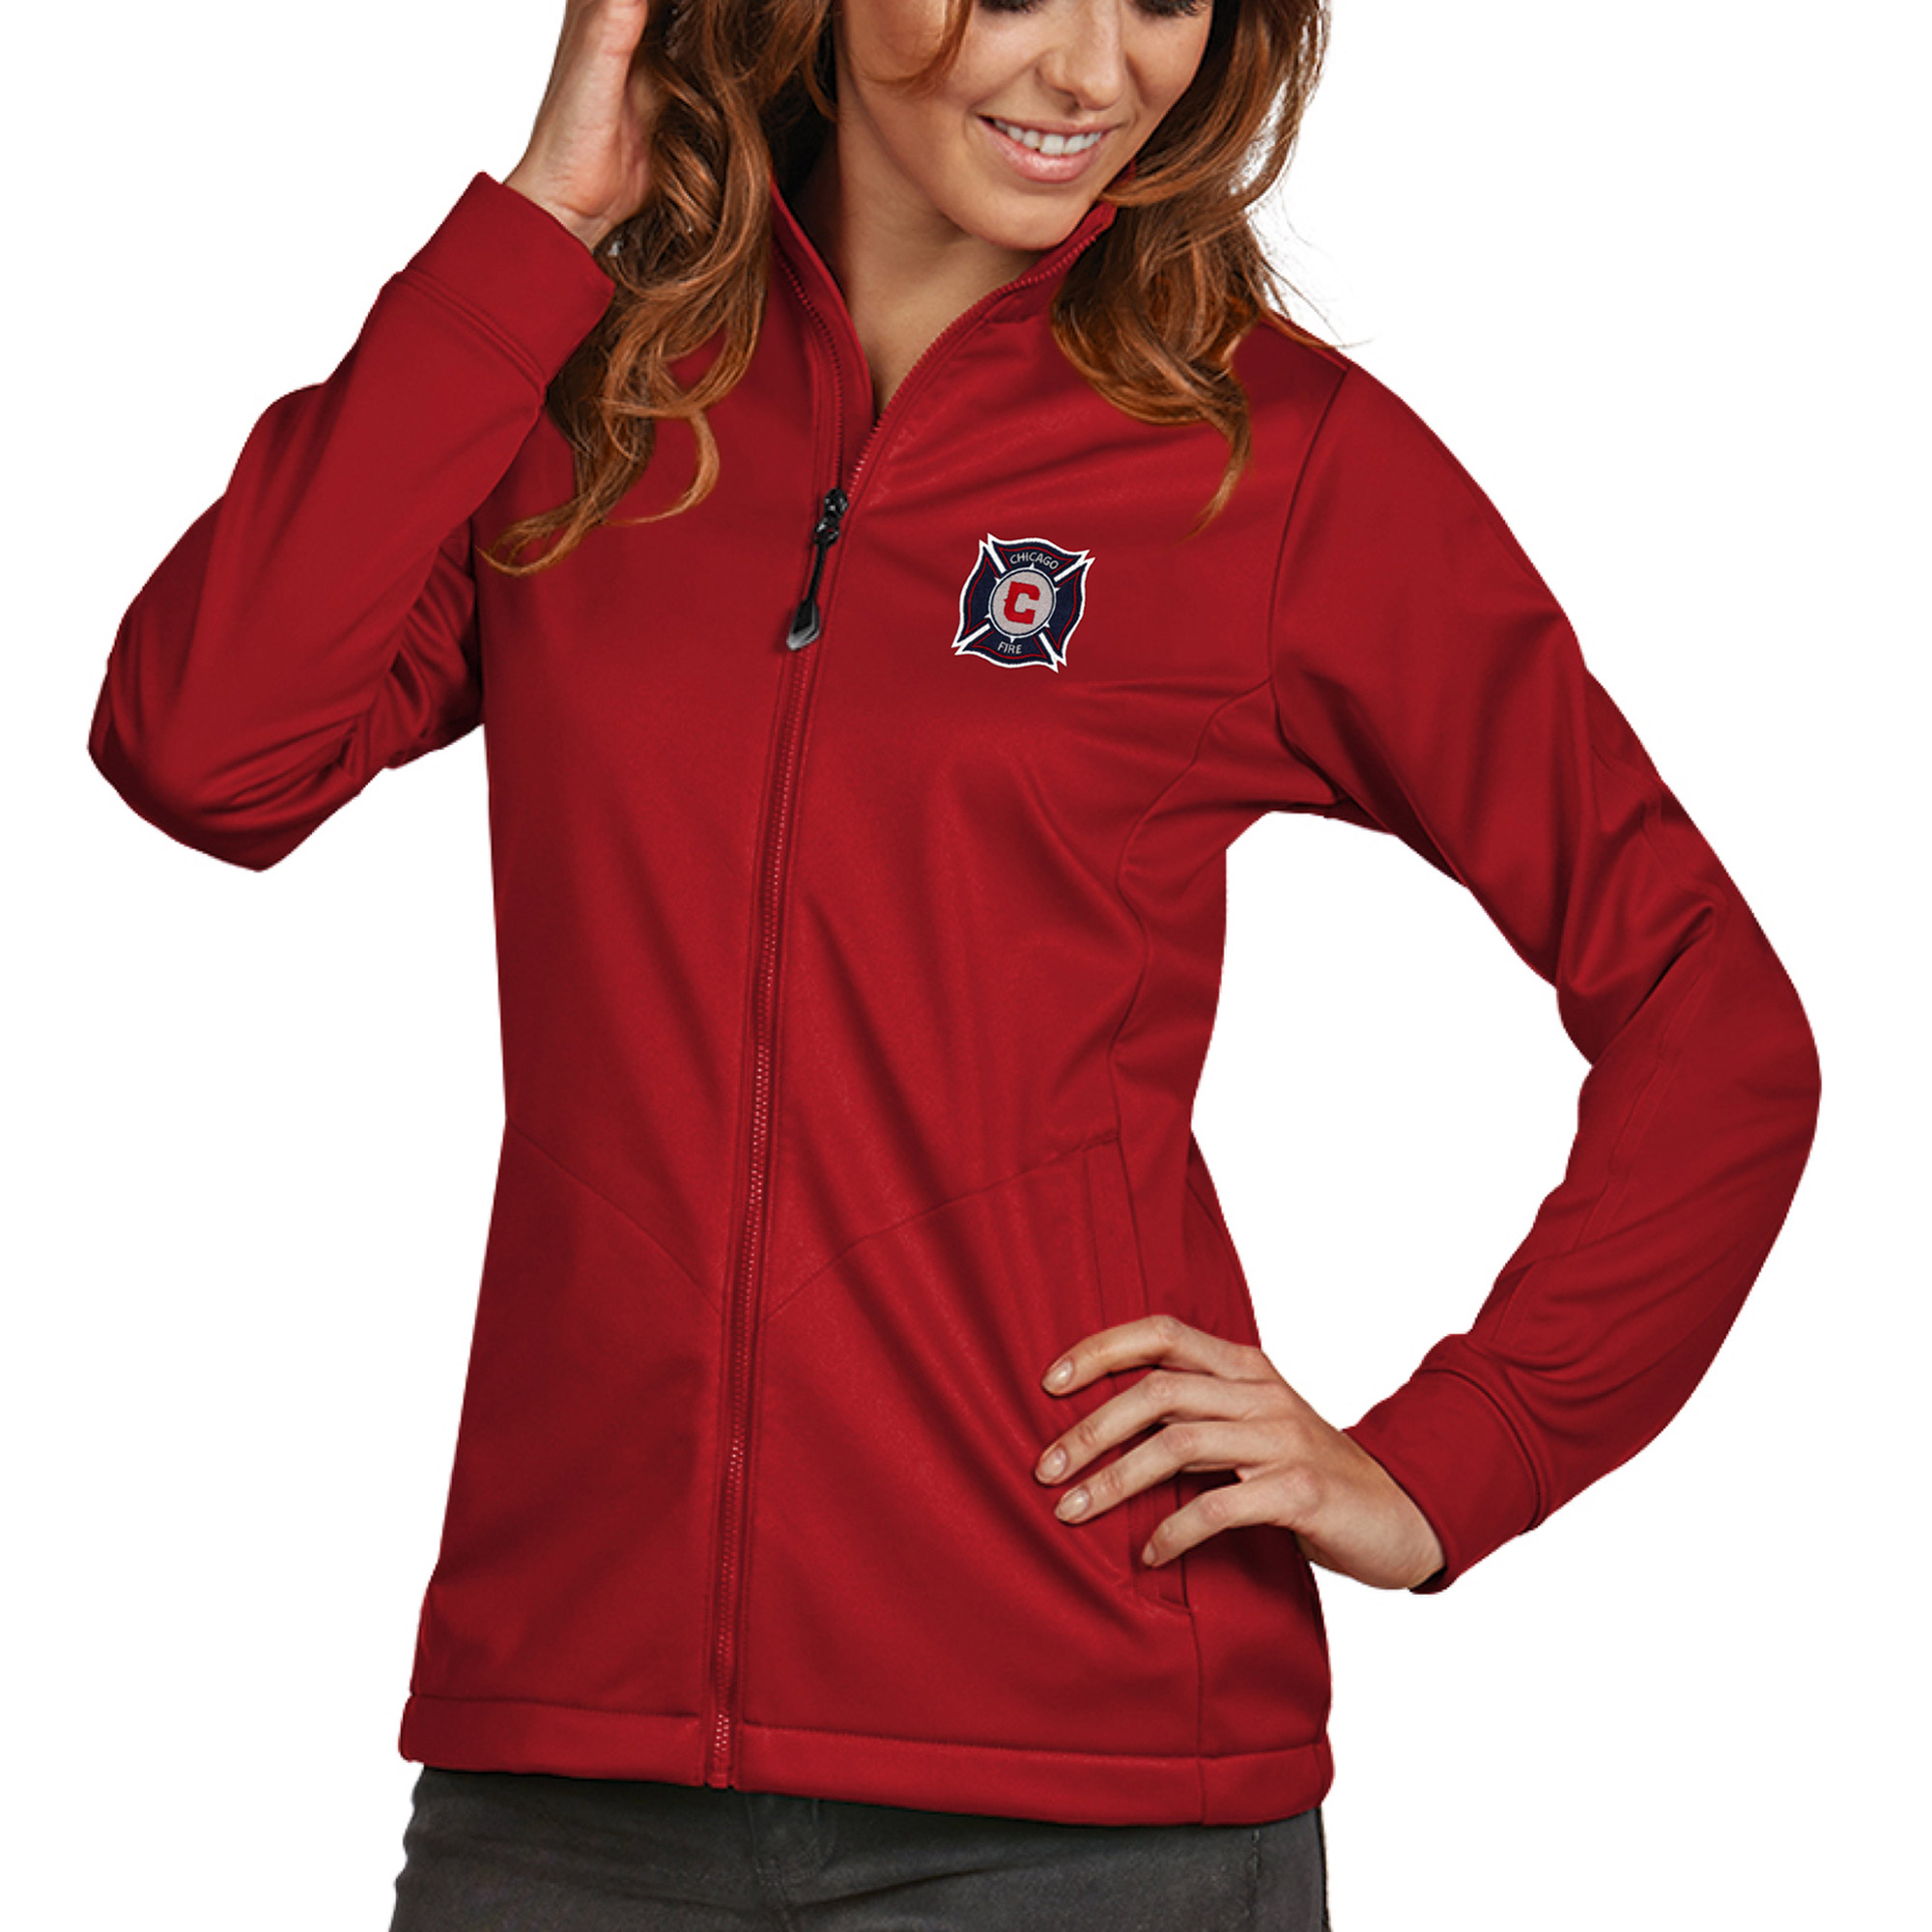 Chicago Fire Antigua Women's Golf Full Zip Jacket - Red